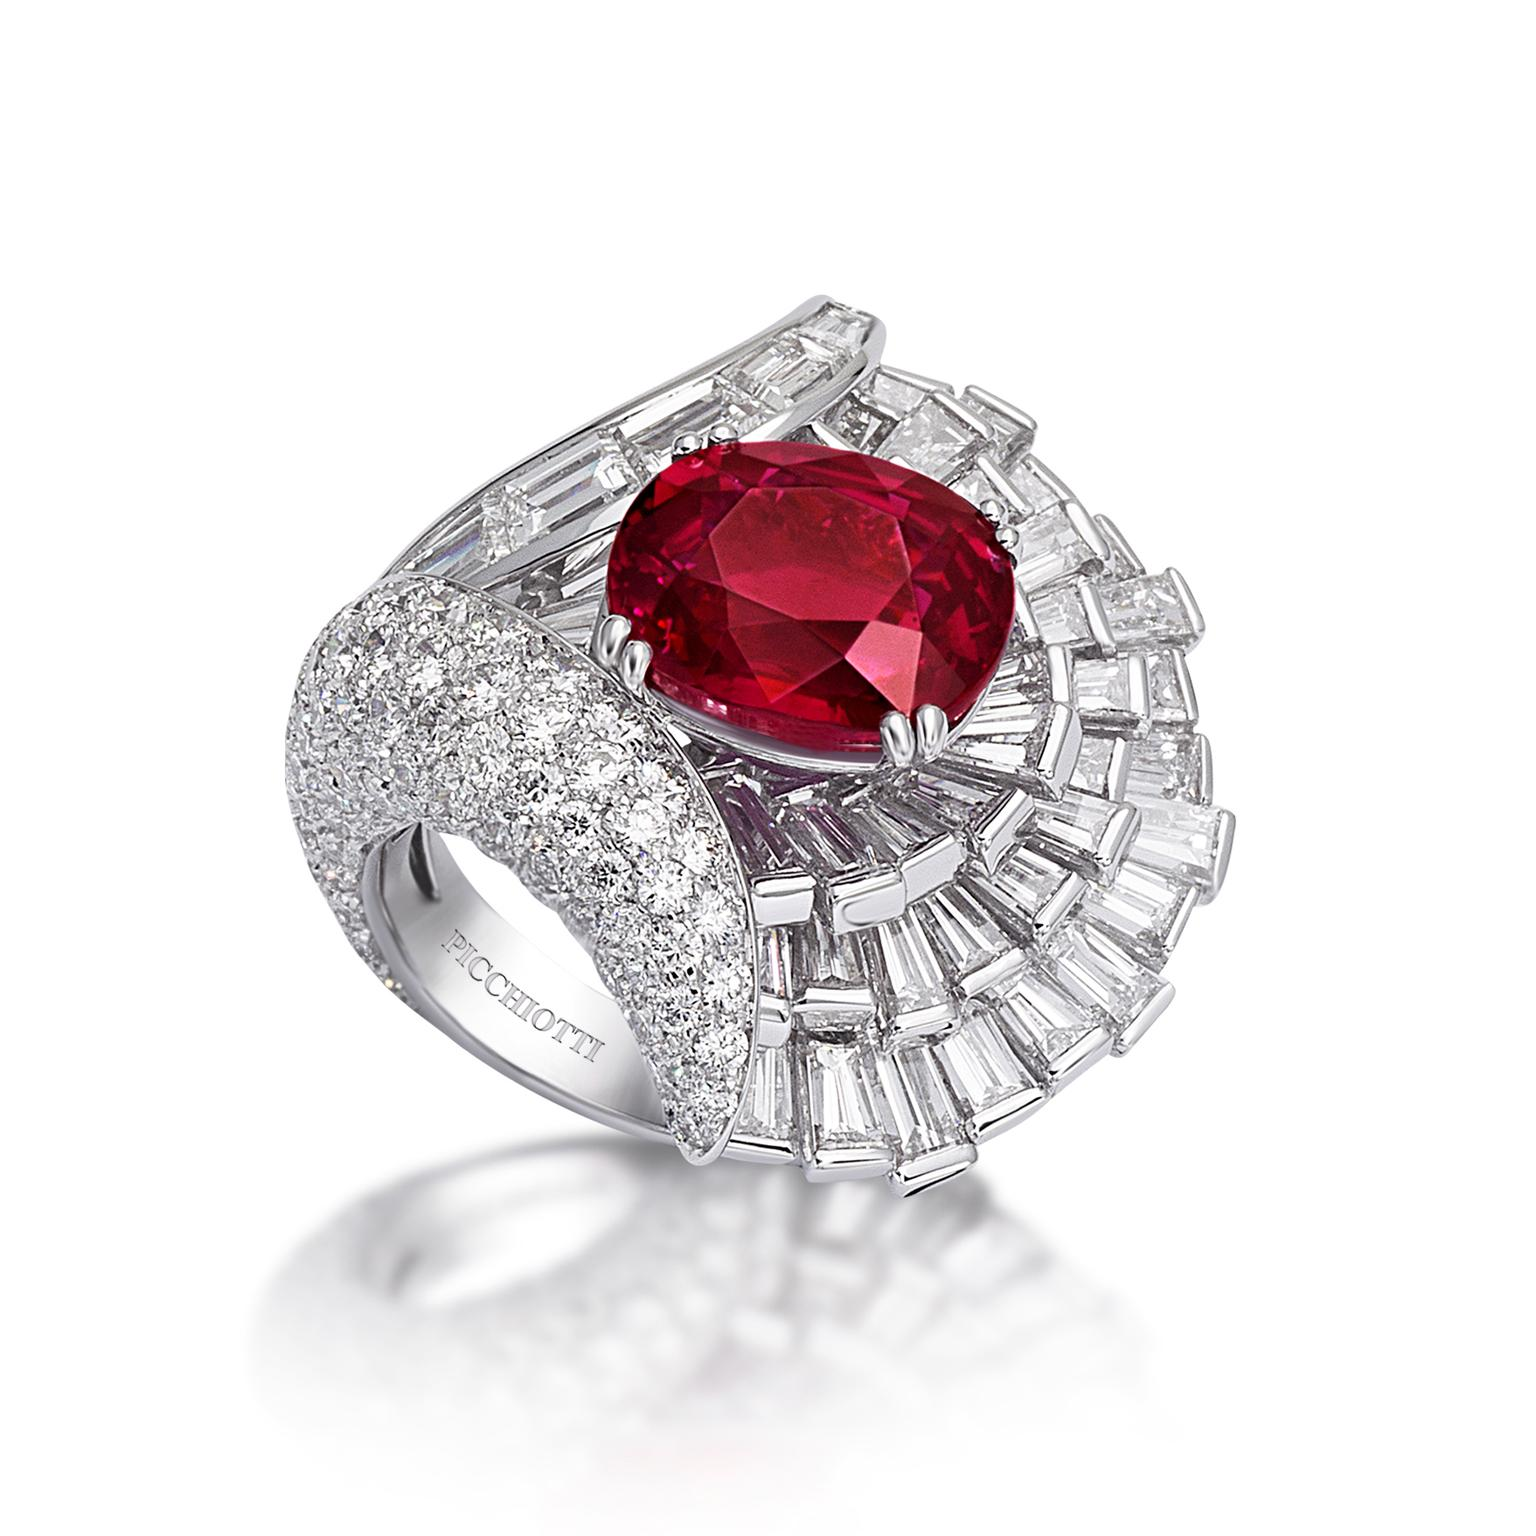 Picchiotti ruby one of a kind ring